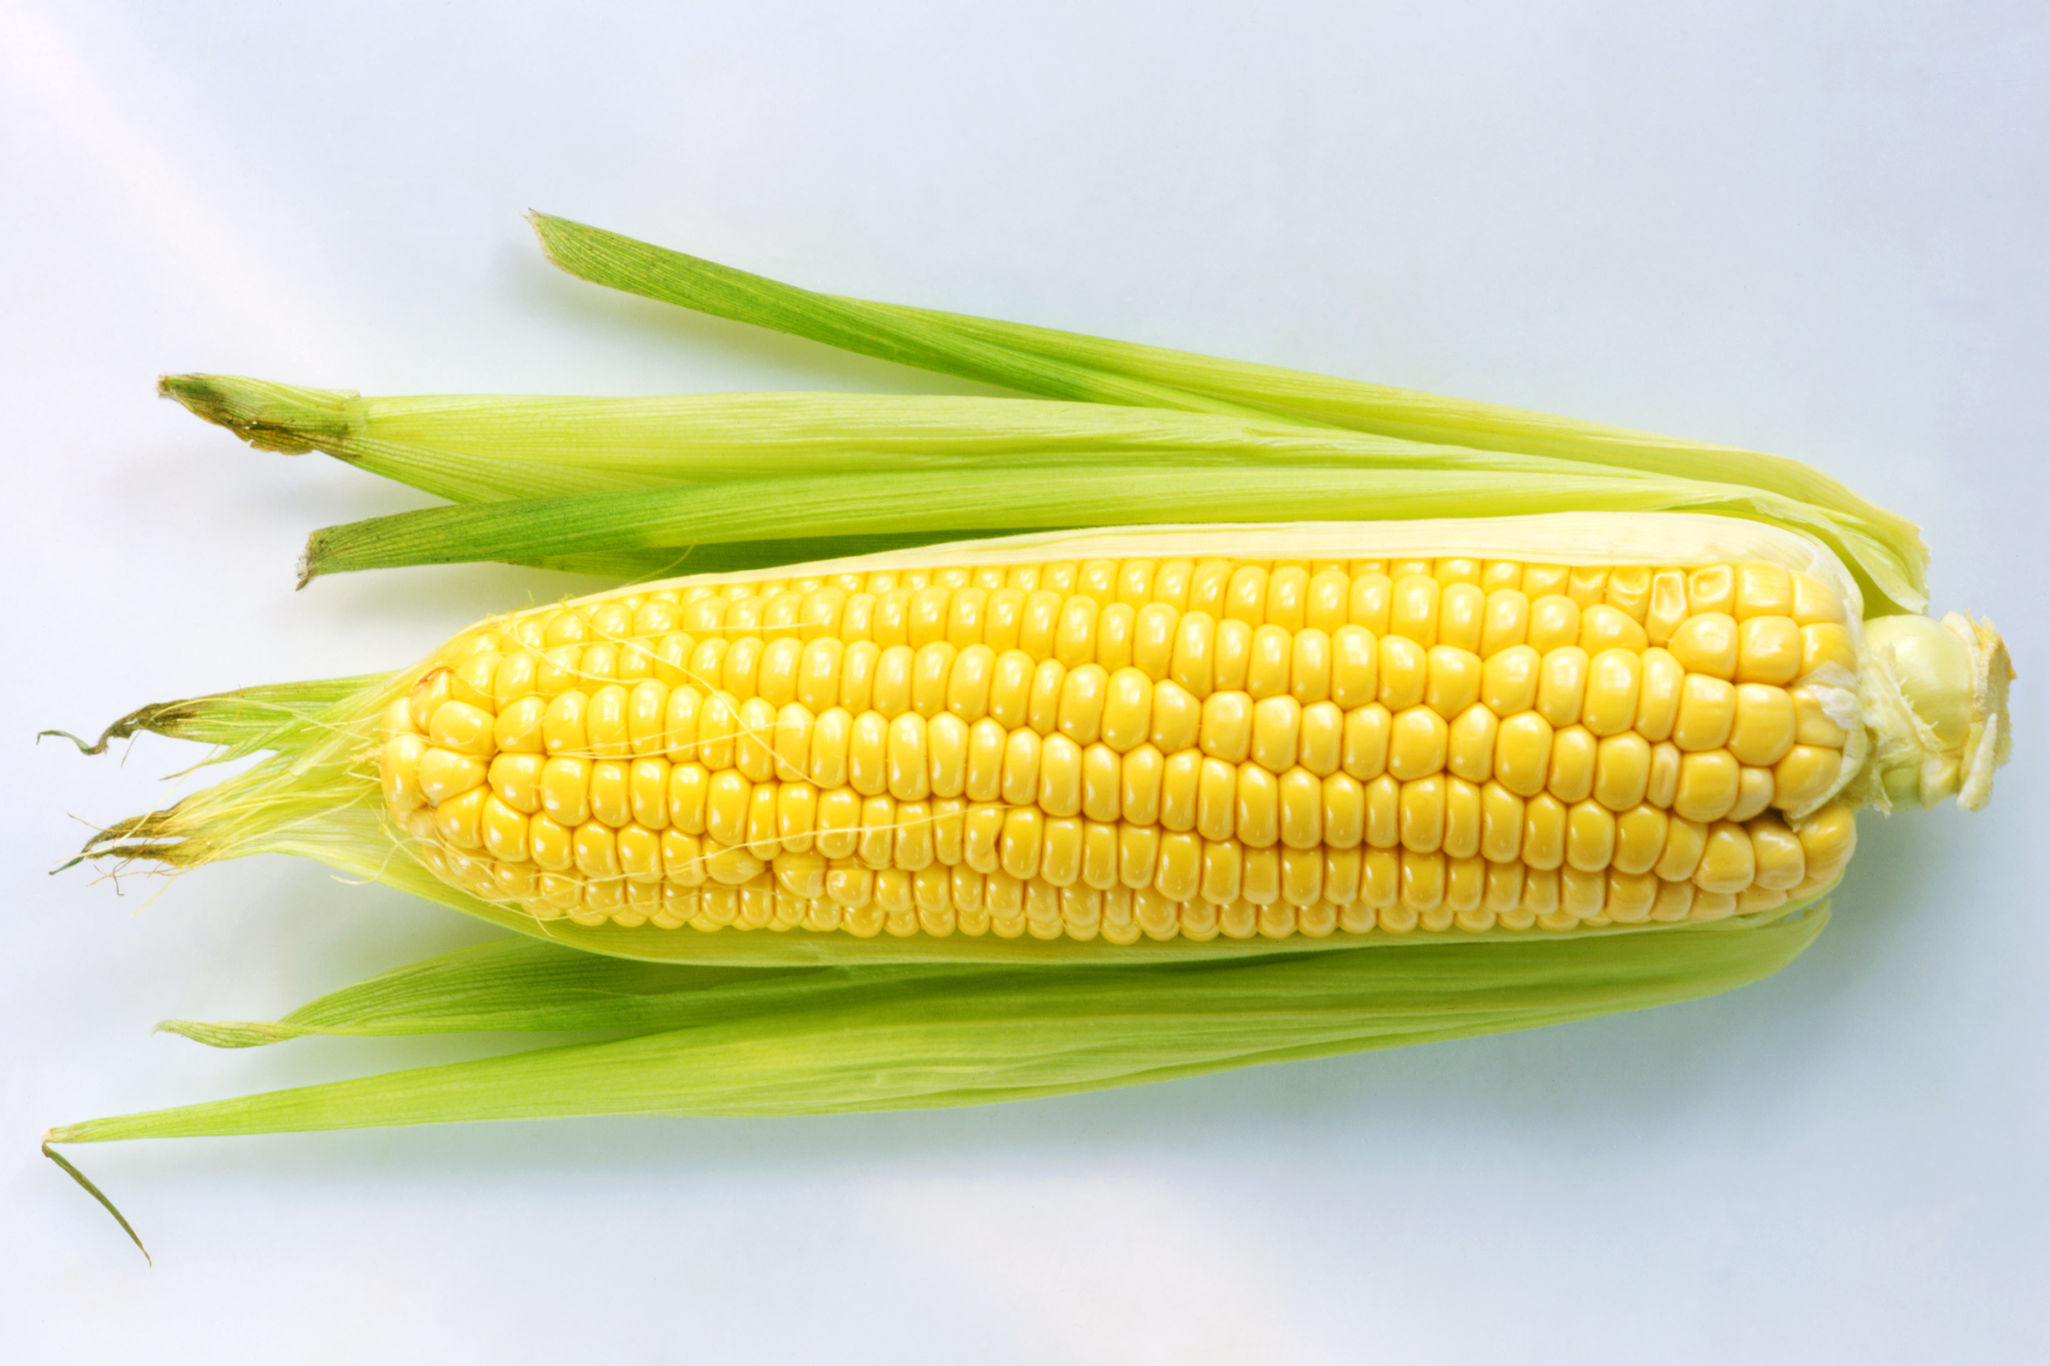 Corn 101: How to Choose, Store, and Cook Fresh Ears